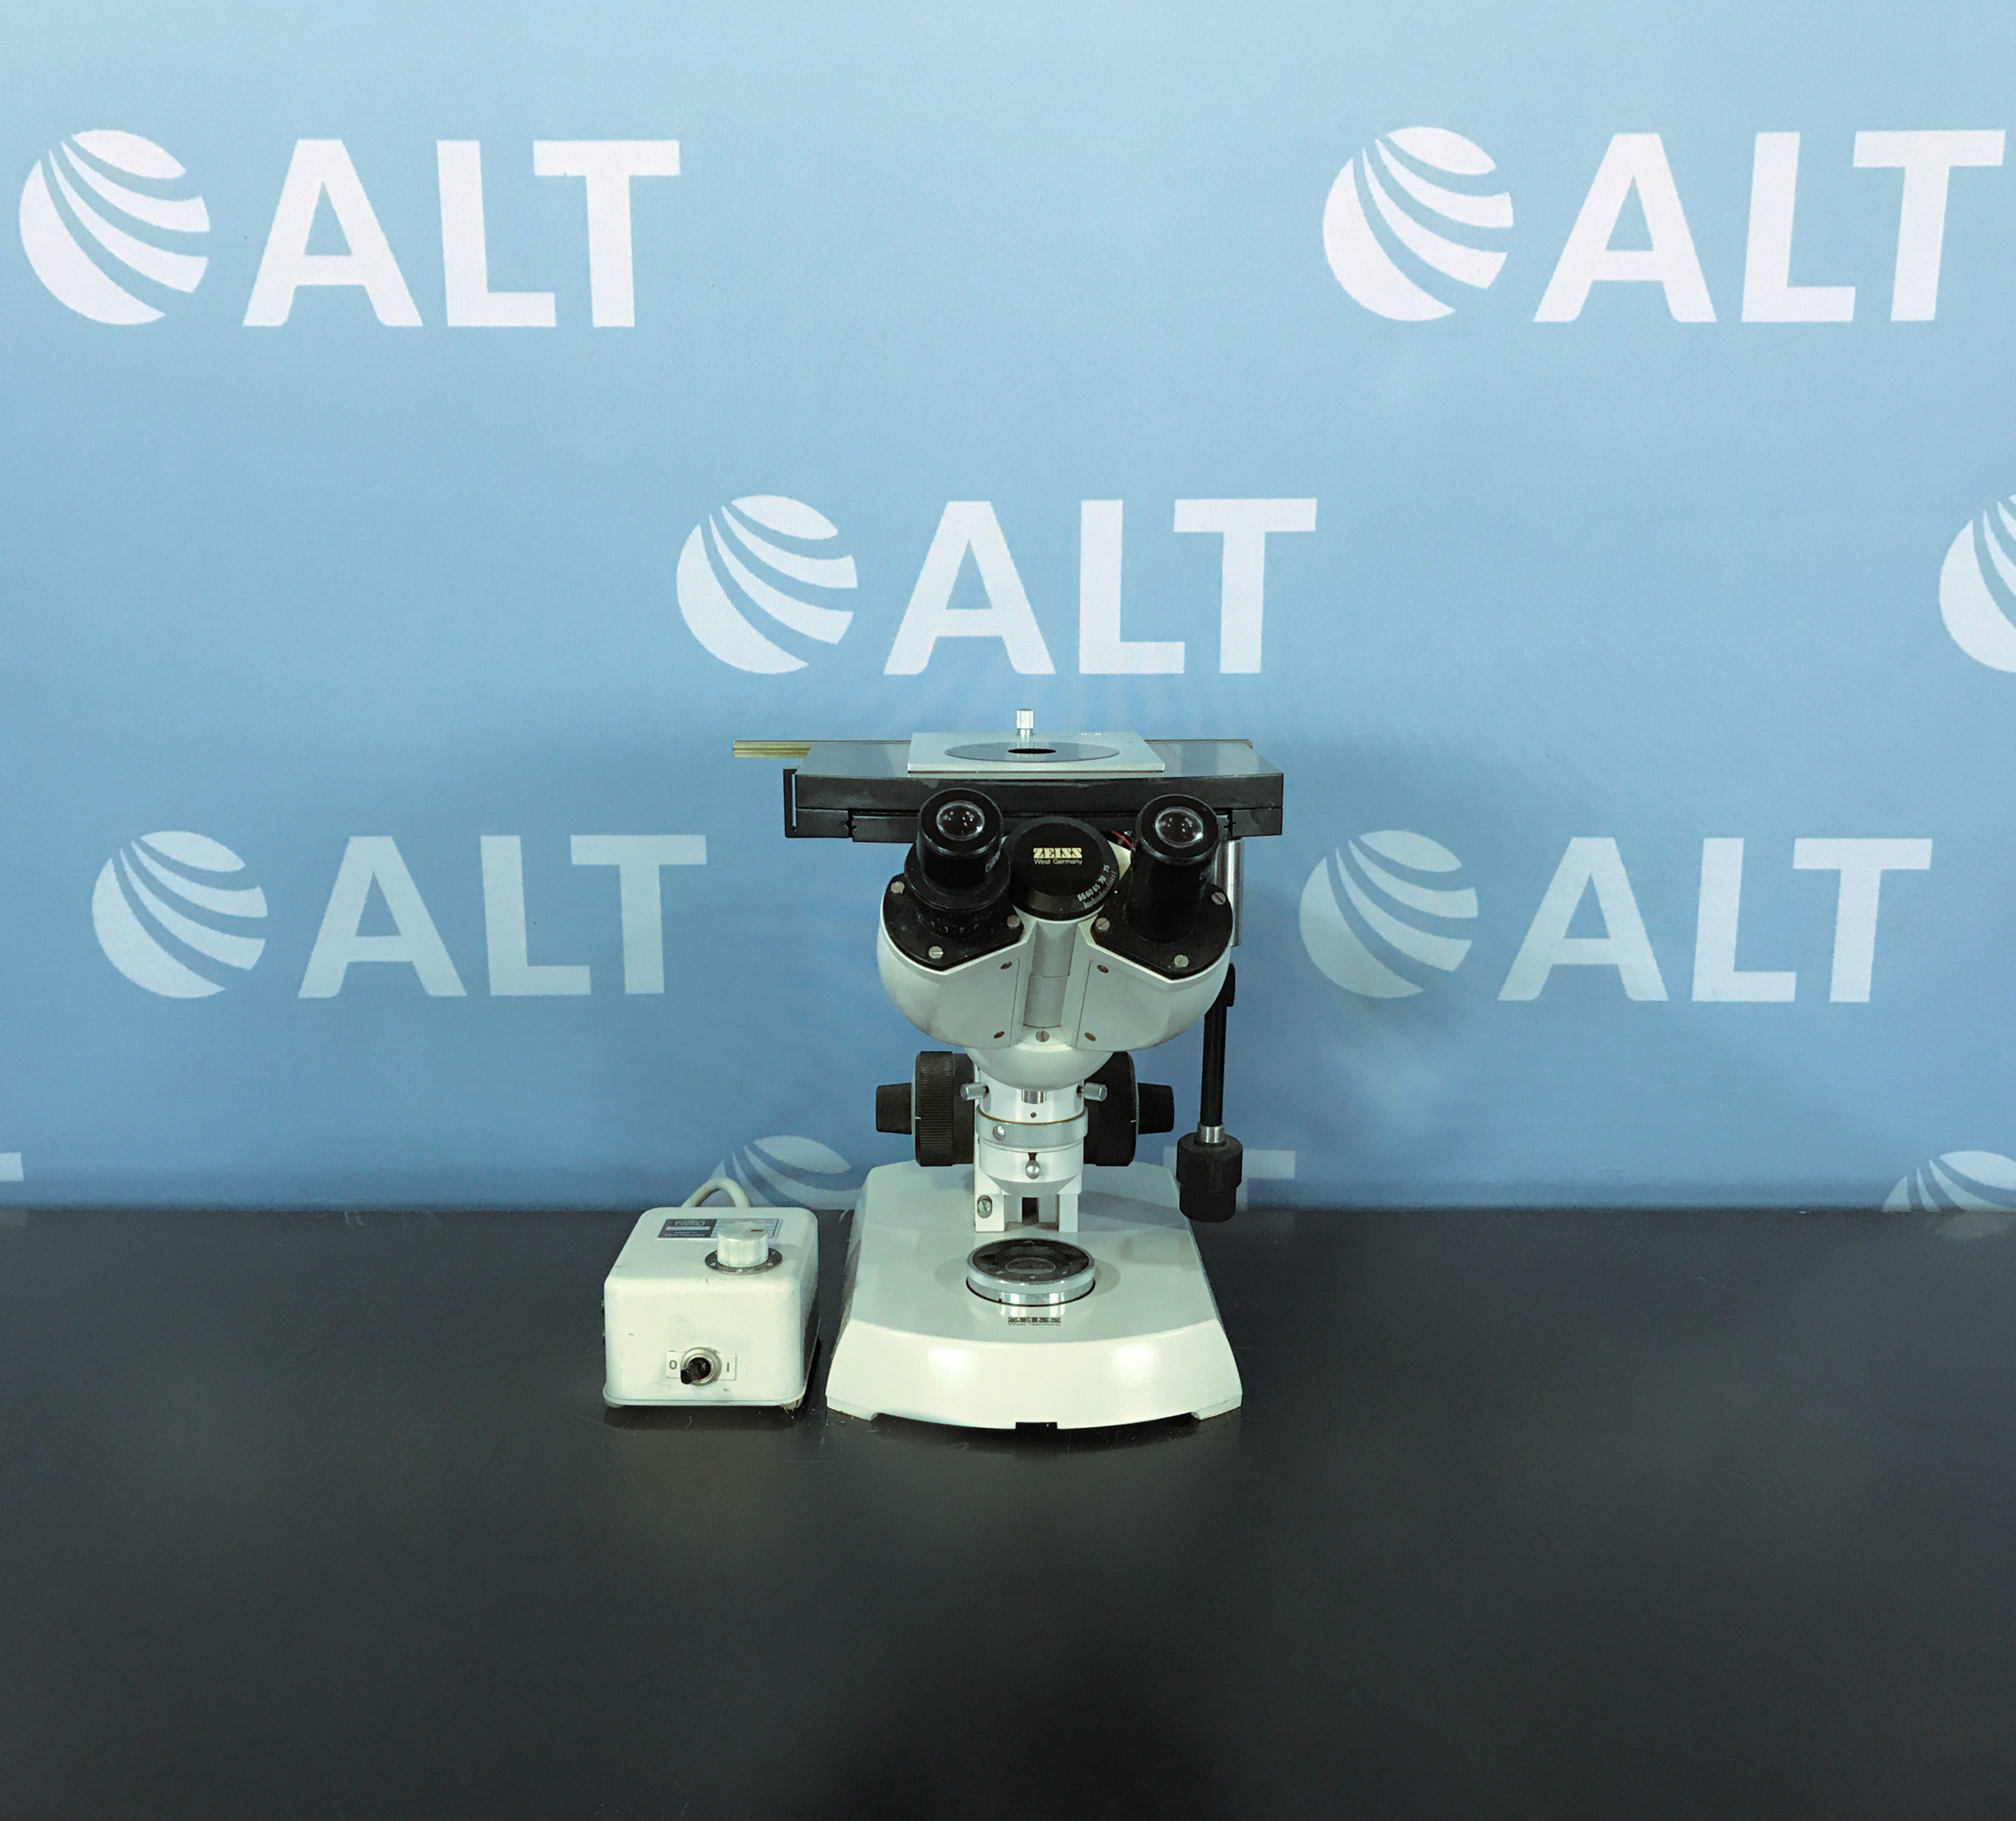 Carl Zeiss Opton Inverted Microscope 46 70 58 9901 With Power Supply Invertoscope 39 25 65 Image